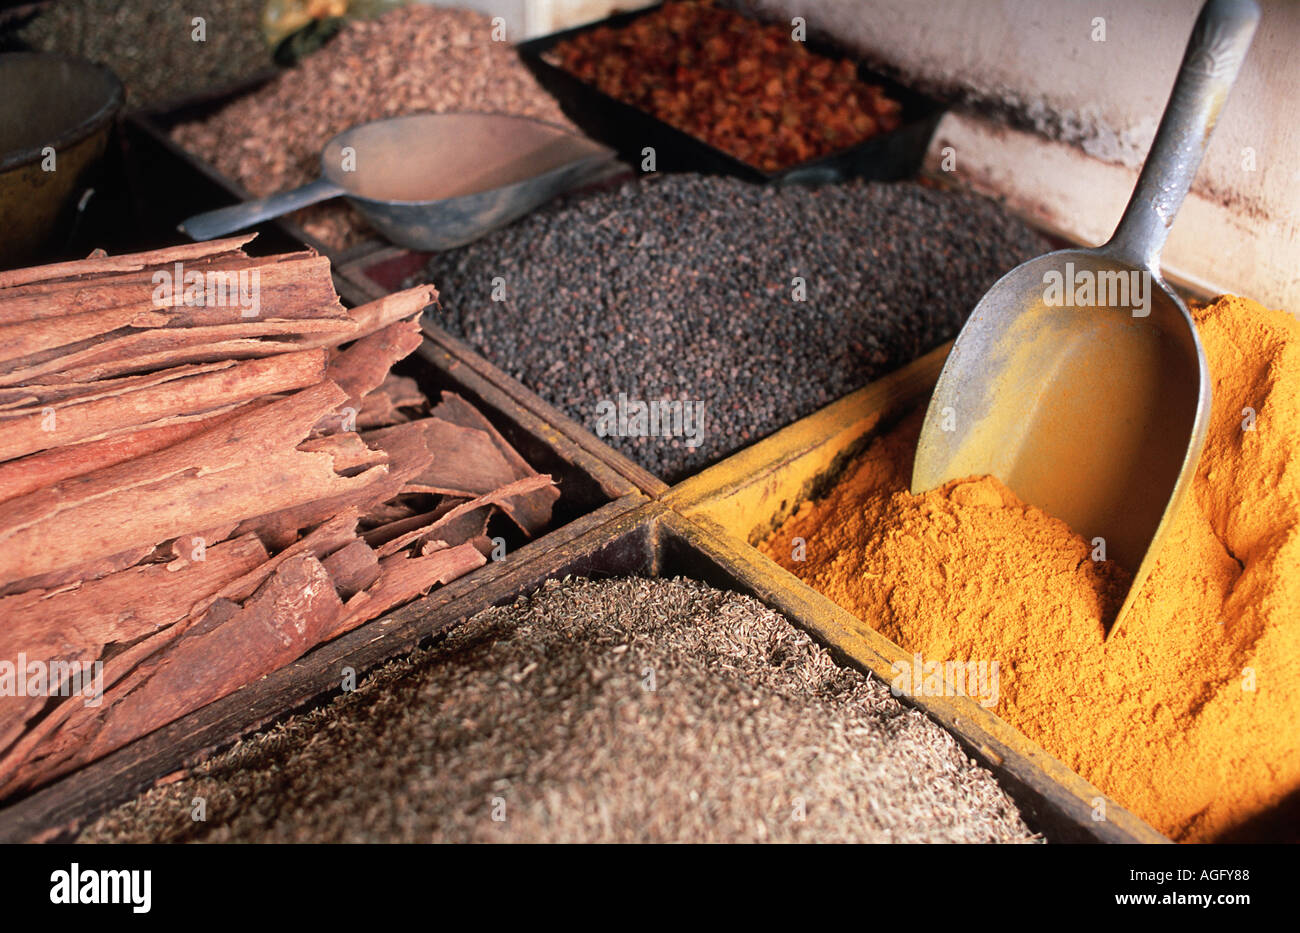 Grain spices and curry powder for sale at market Stone Town Zanzibar Tanzania Spice Tours are popular excursions - Stock Image